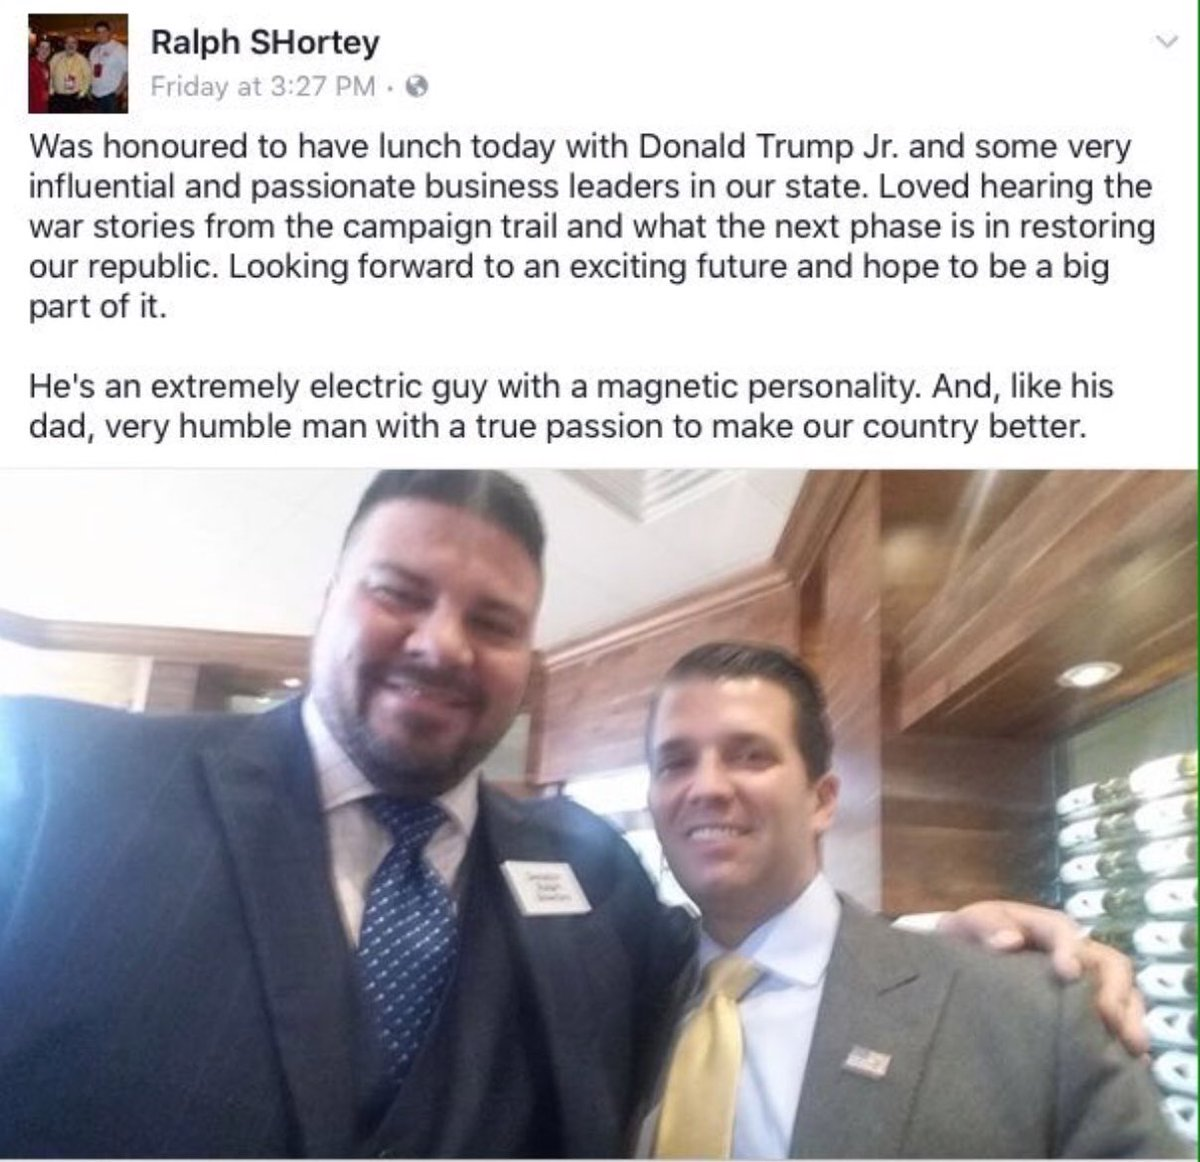 #RalphShortey, who was arrested at a hotel w a teen boy, meets with Don Jr. the very next day. He was recently charged with sex trafficking <br>http://pic.twitter.com/JFuEVxqbOI